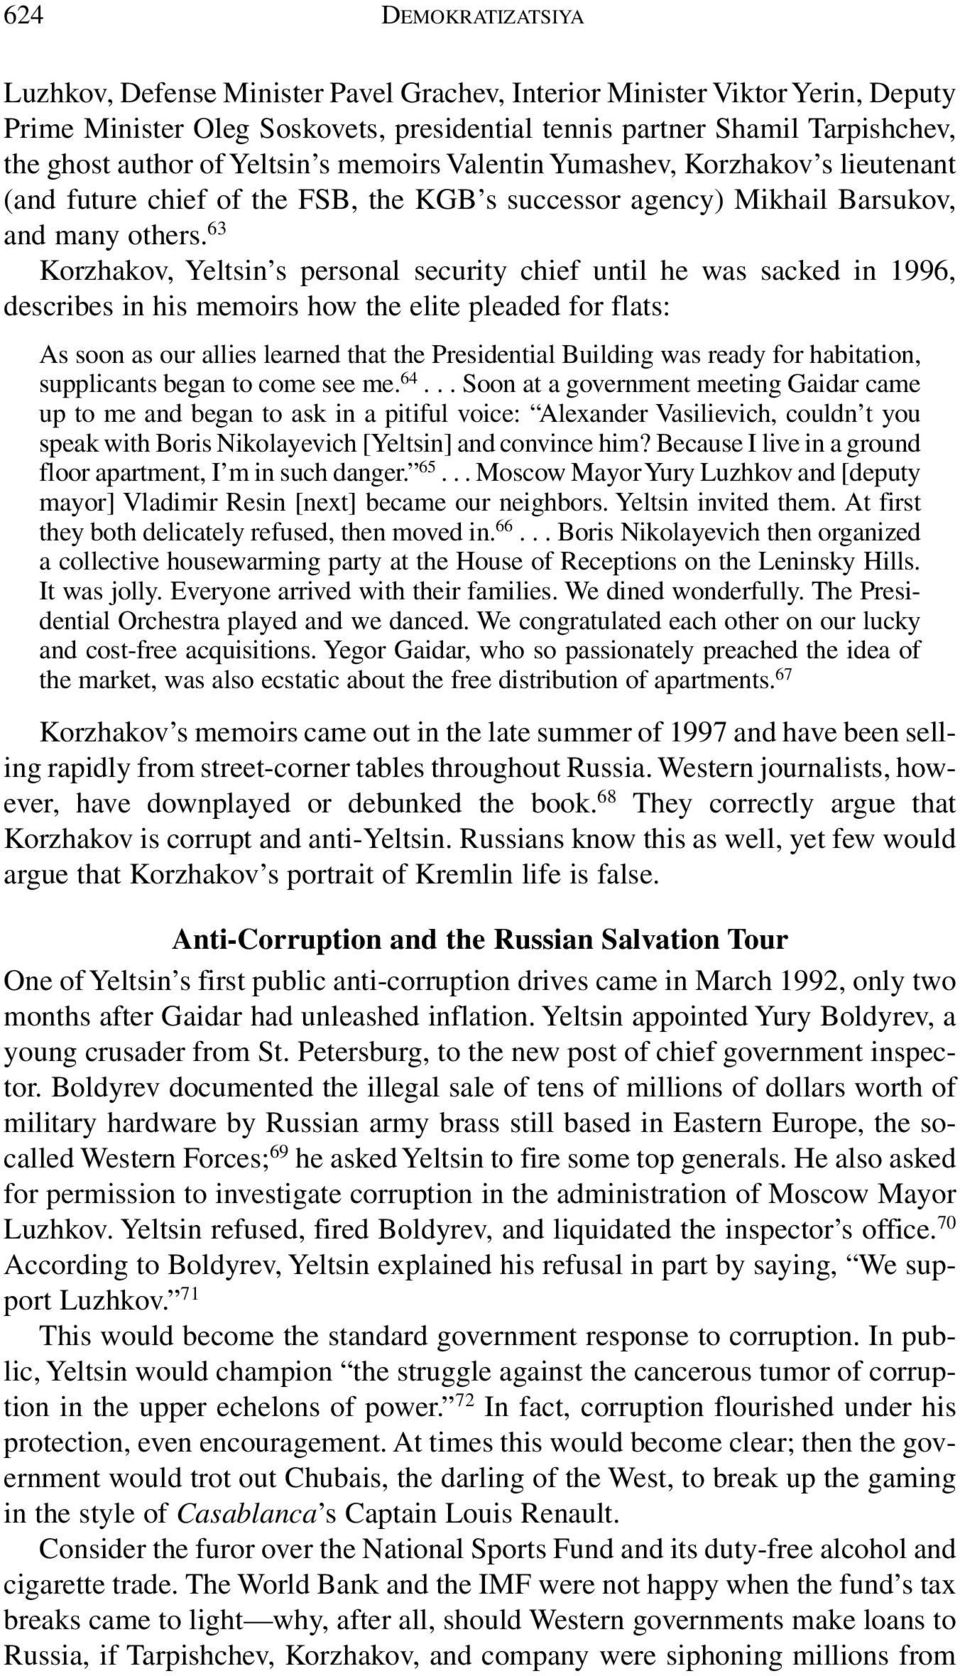 63 Korzhakov, Yeltsin s personal security chief until he was sacked in 1996, describes in his memoirs how the elite pleaded for flats: As soon as our allies learned that the Presidential Building was